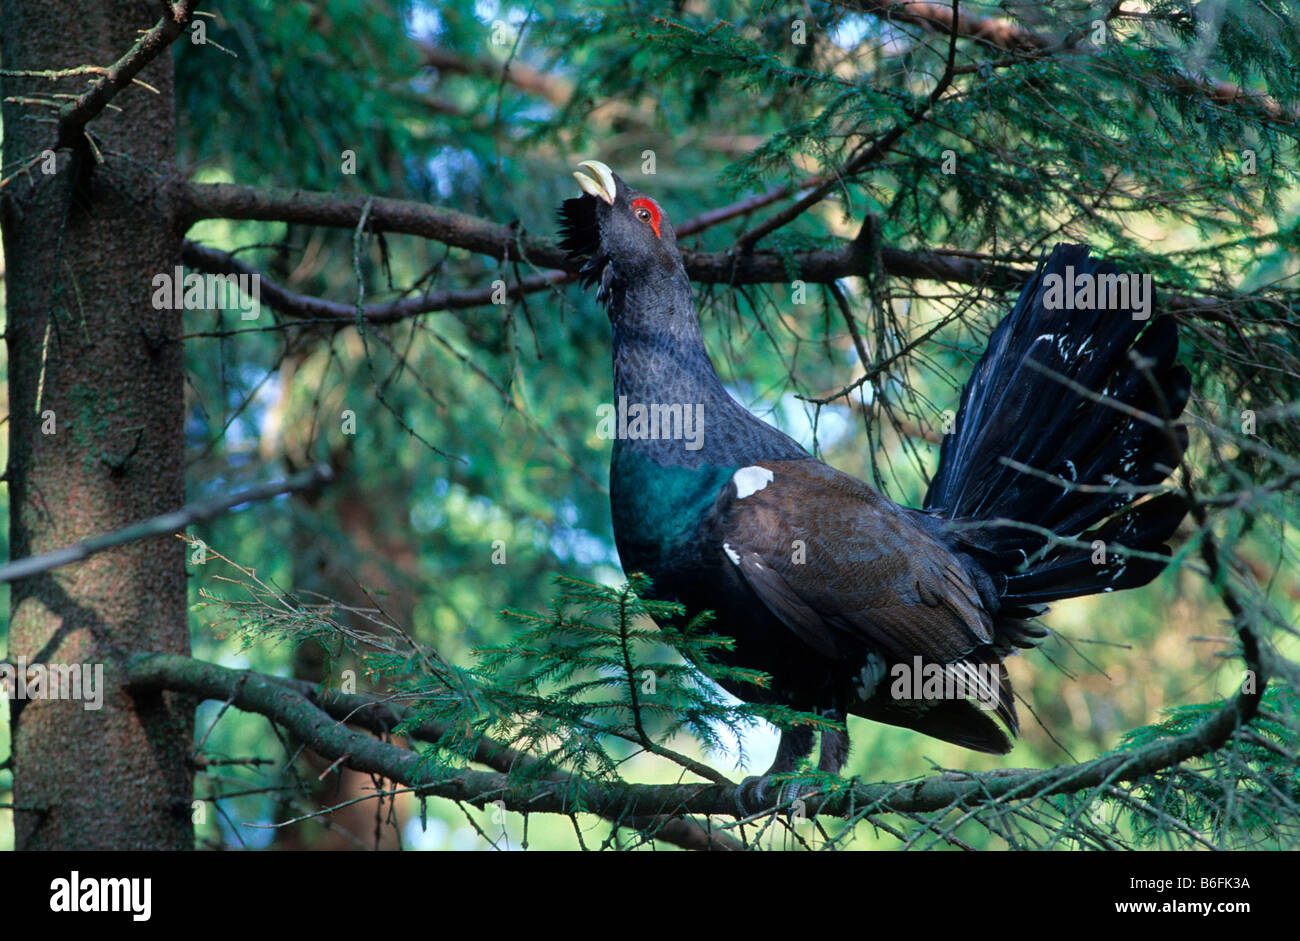 Capercaillie or Wood Grouse or Western Capercaillie (Tetrao urogallus), bird performing a courtship display while Stock Photo